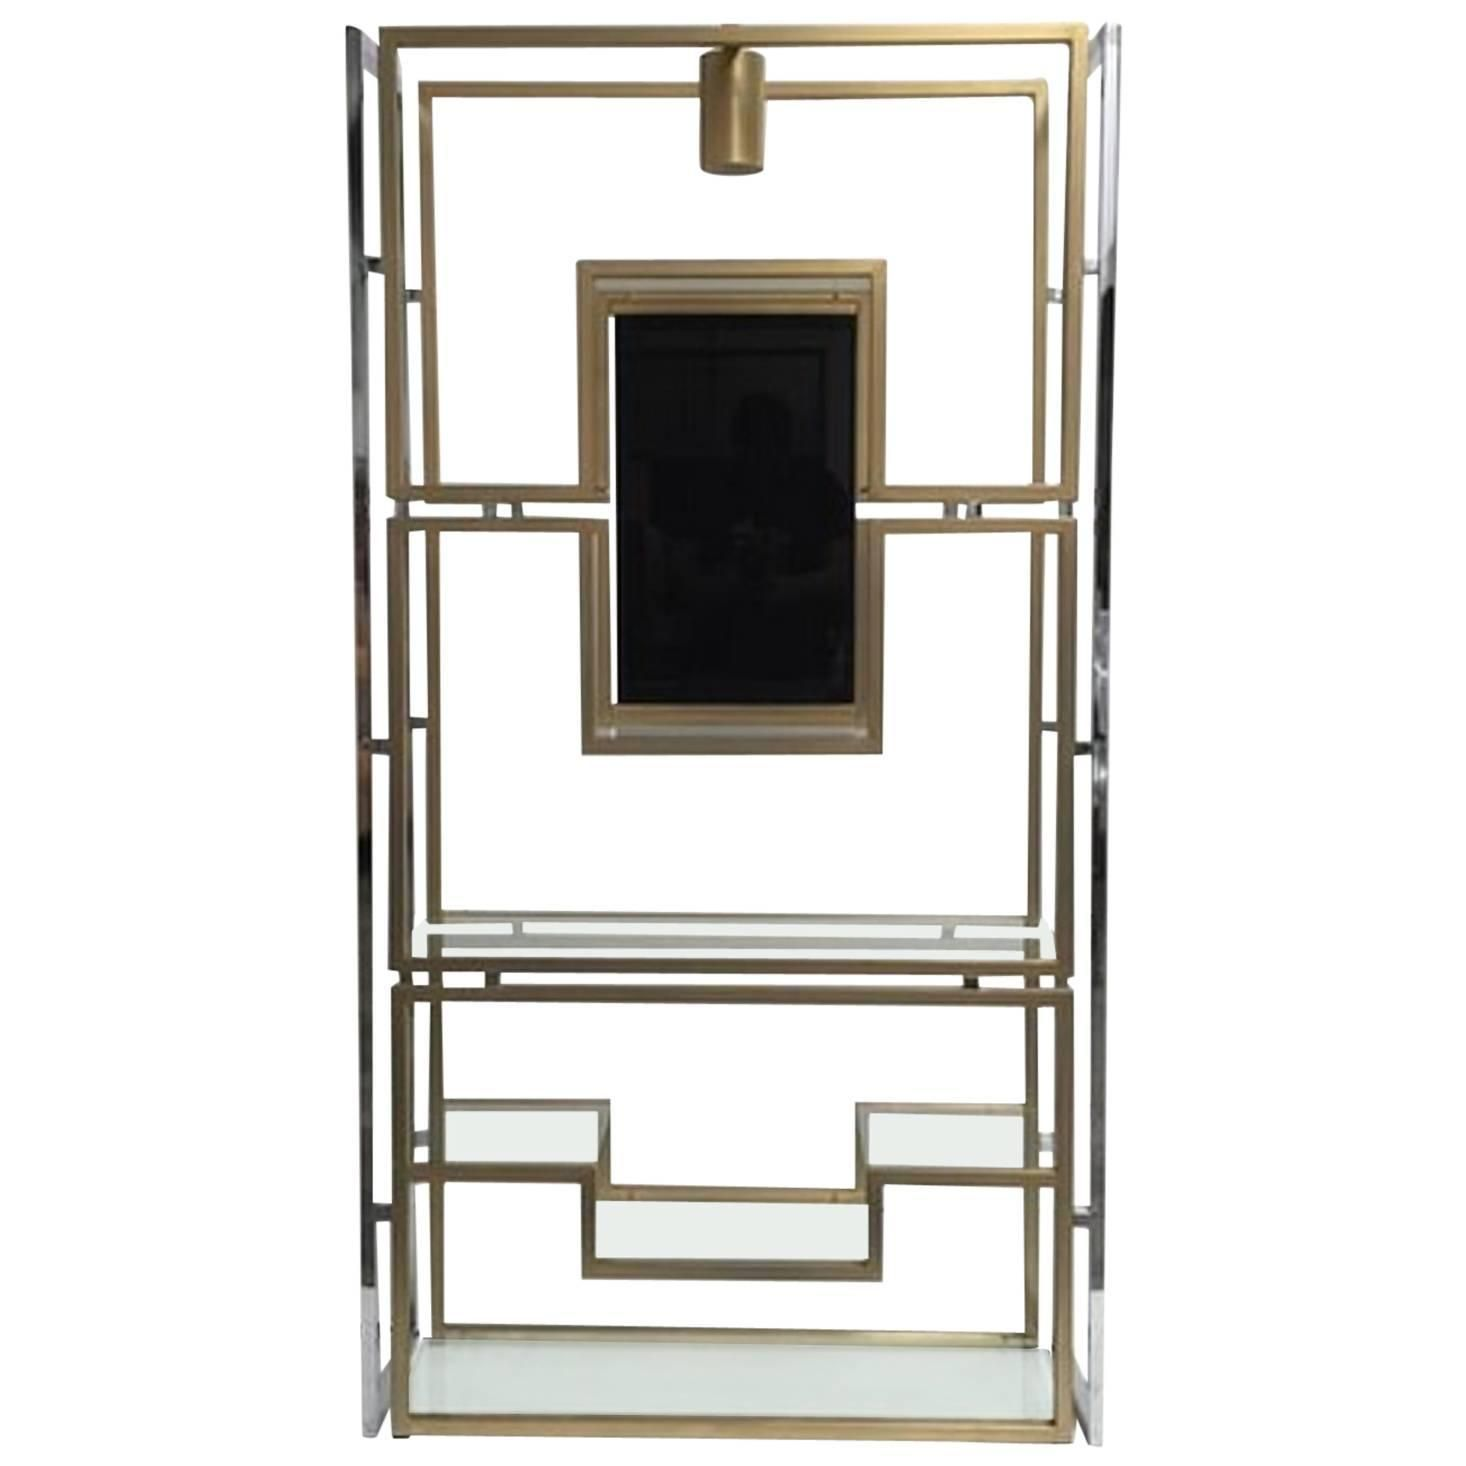 Elegant Étagère by Kim Moltzer, Finished in Brass, Chrome, Glass, 1968 | See more antique and modern Vitrines at https://www.1stdibs.com/furniture/storage-case-pieces/vitrines